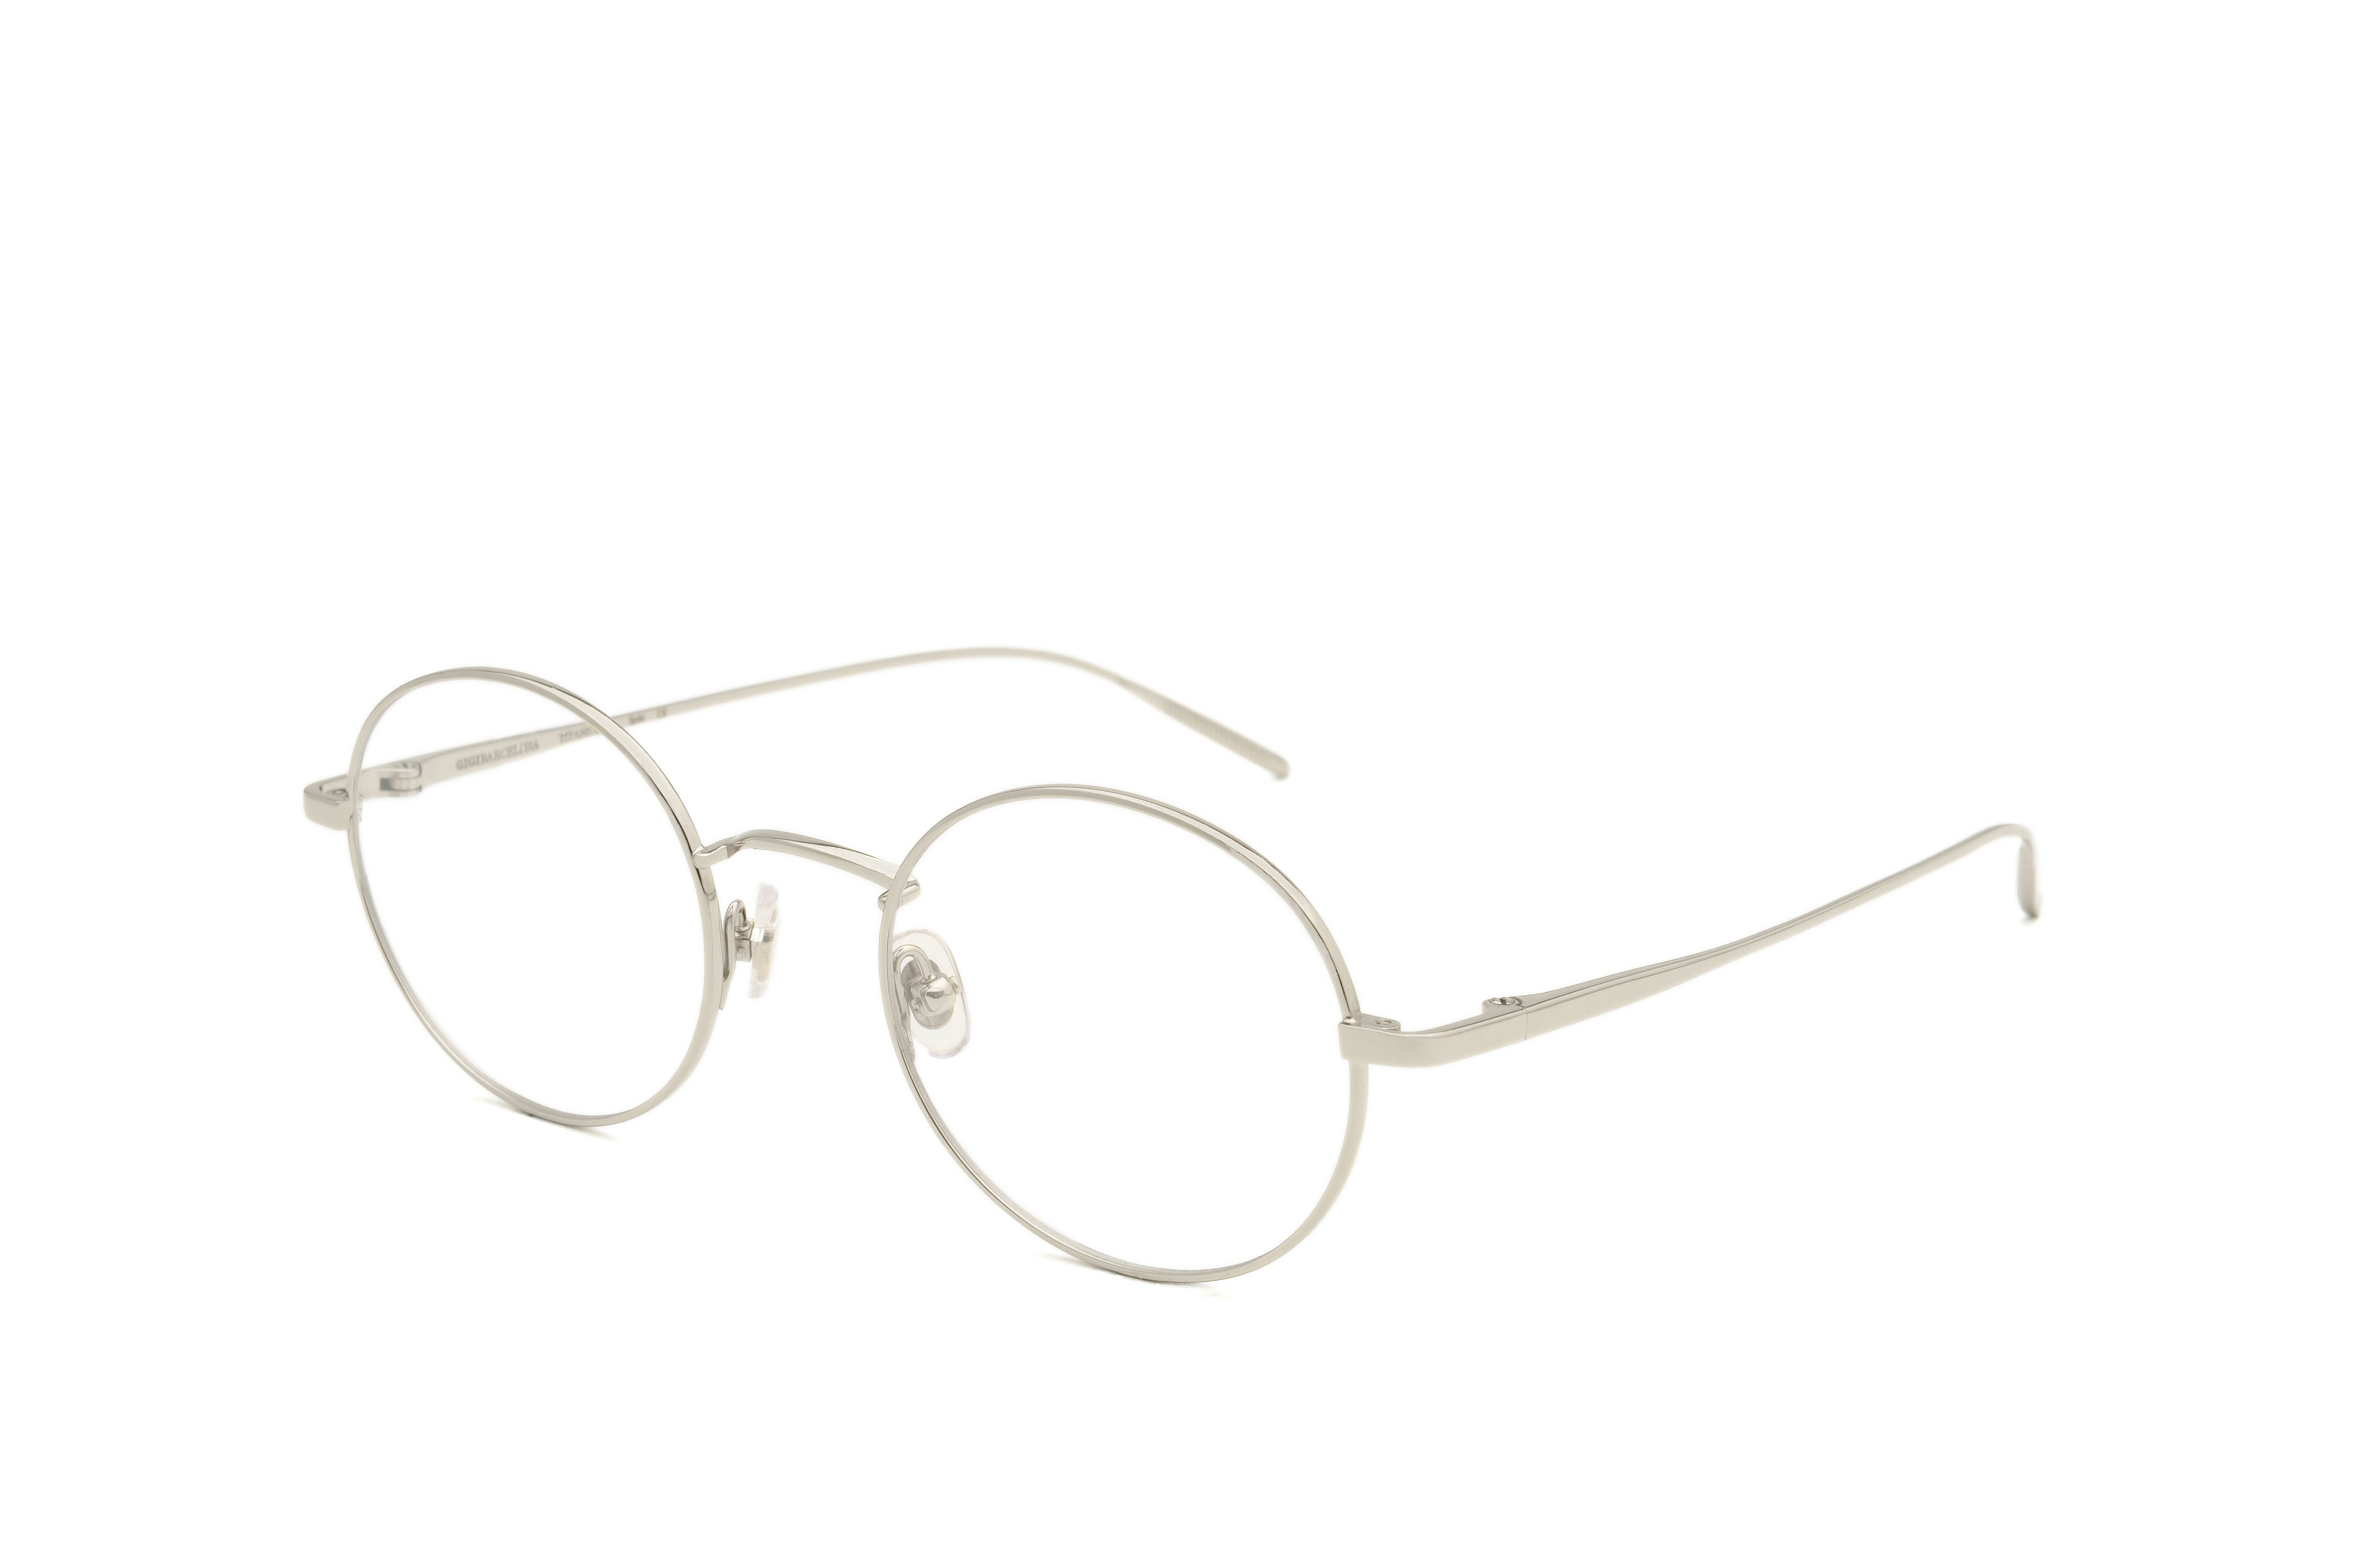 Tokyo metal rounded silver sunglasses by GIGI Studios